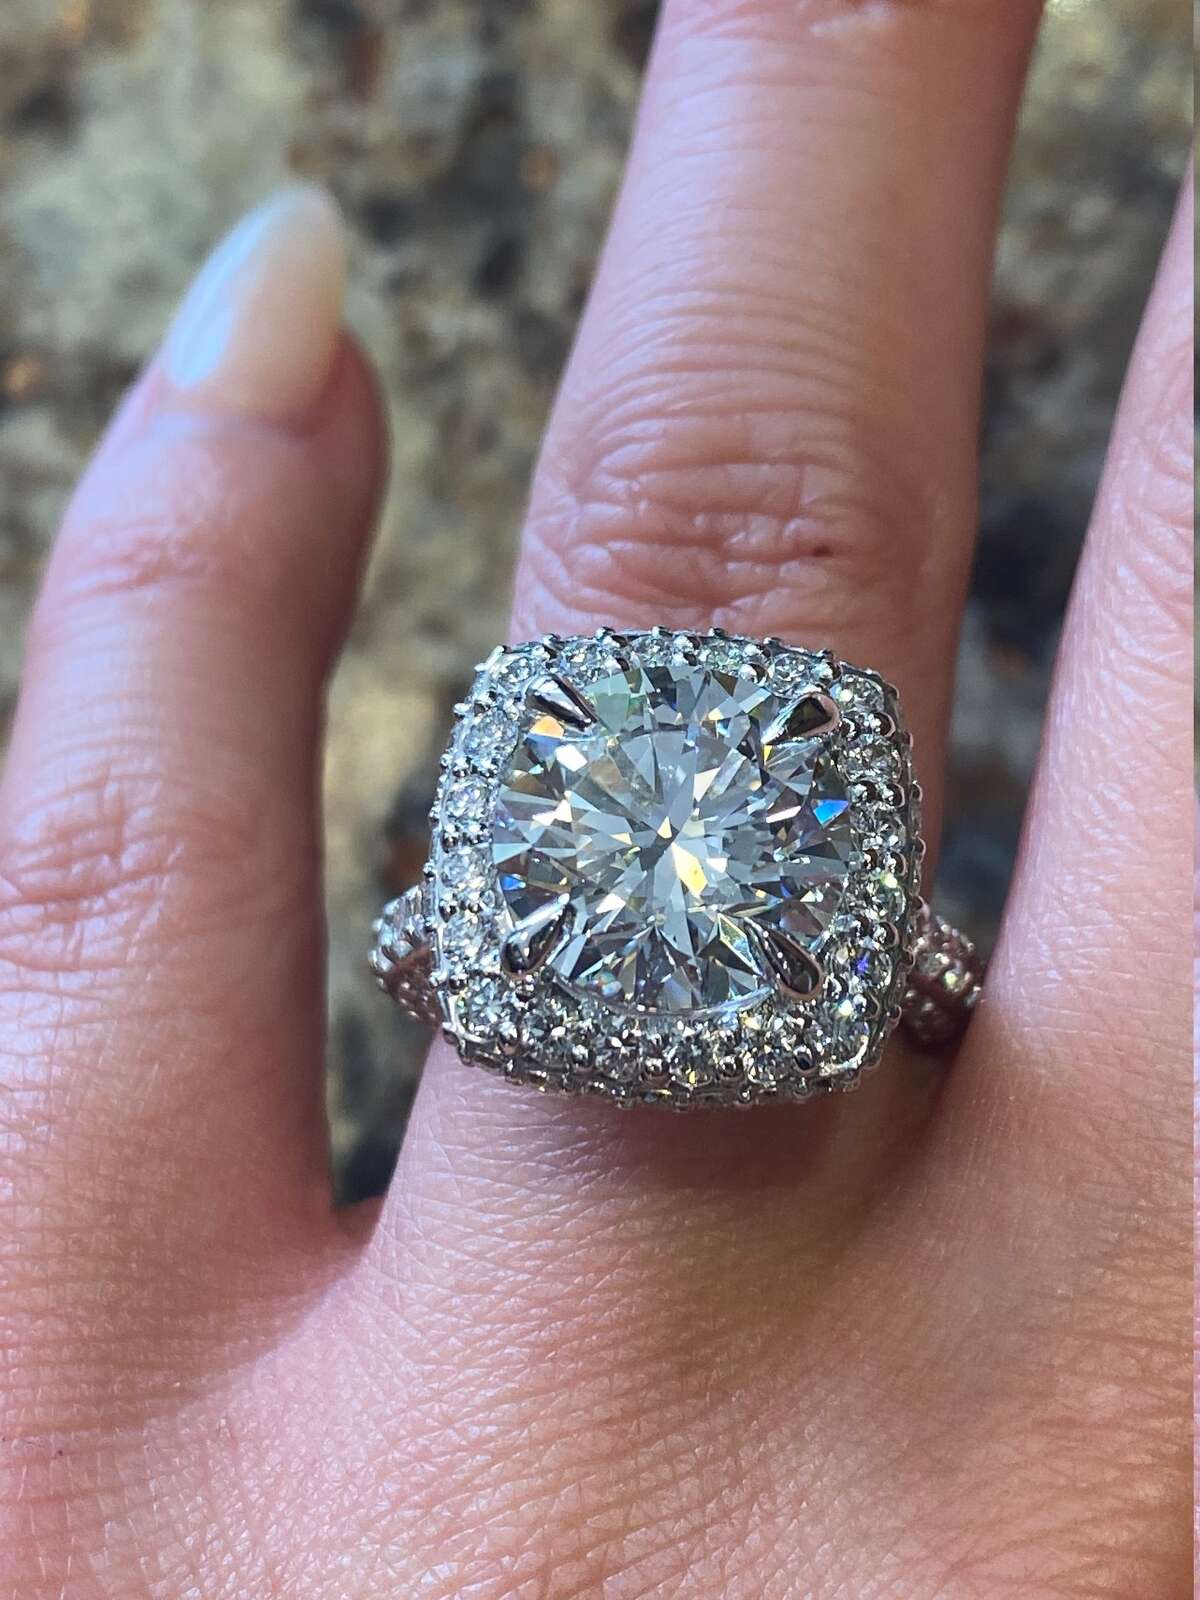 This ring from Hannoush Jewelers in Albany and Clifton Park costs more than $125K. When Albert Hannoush, who designed the ring, posted it to Facebook, he received more 500 reactions.